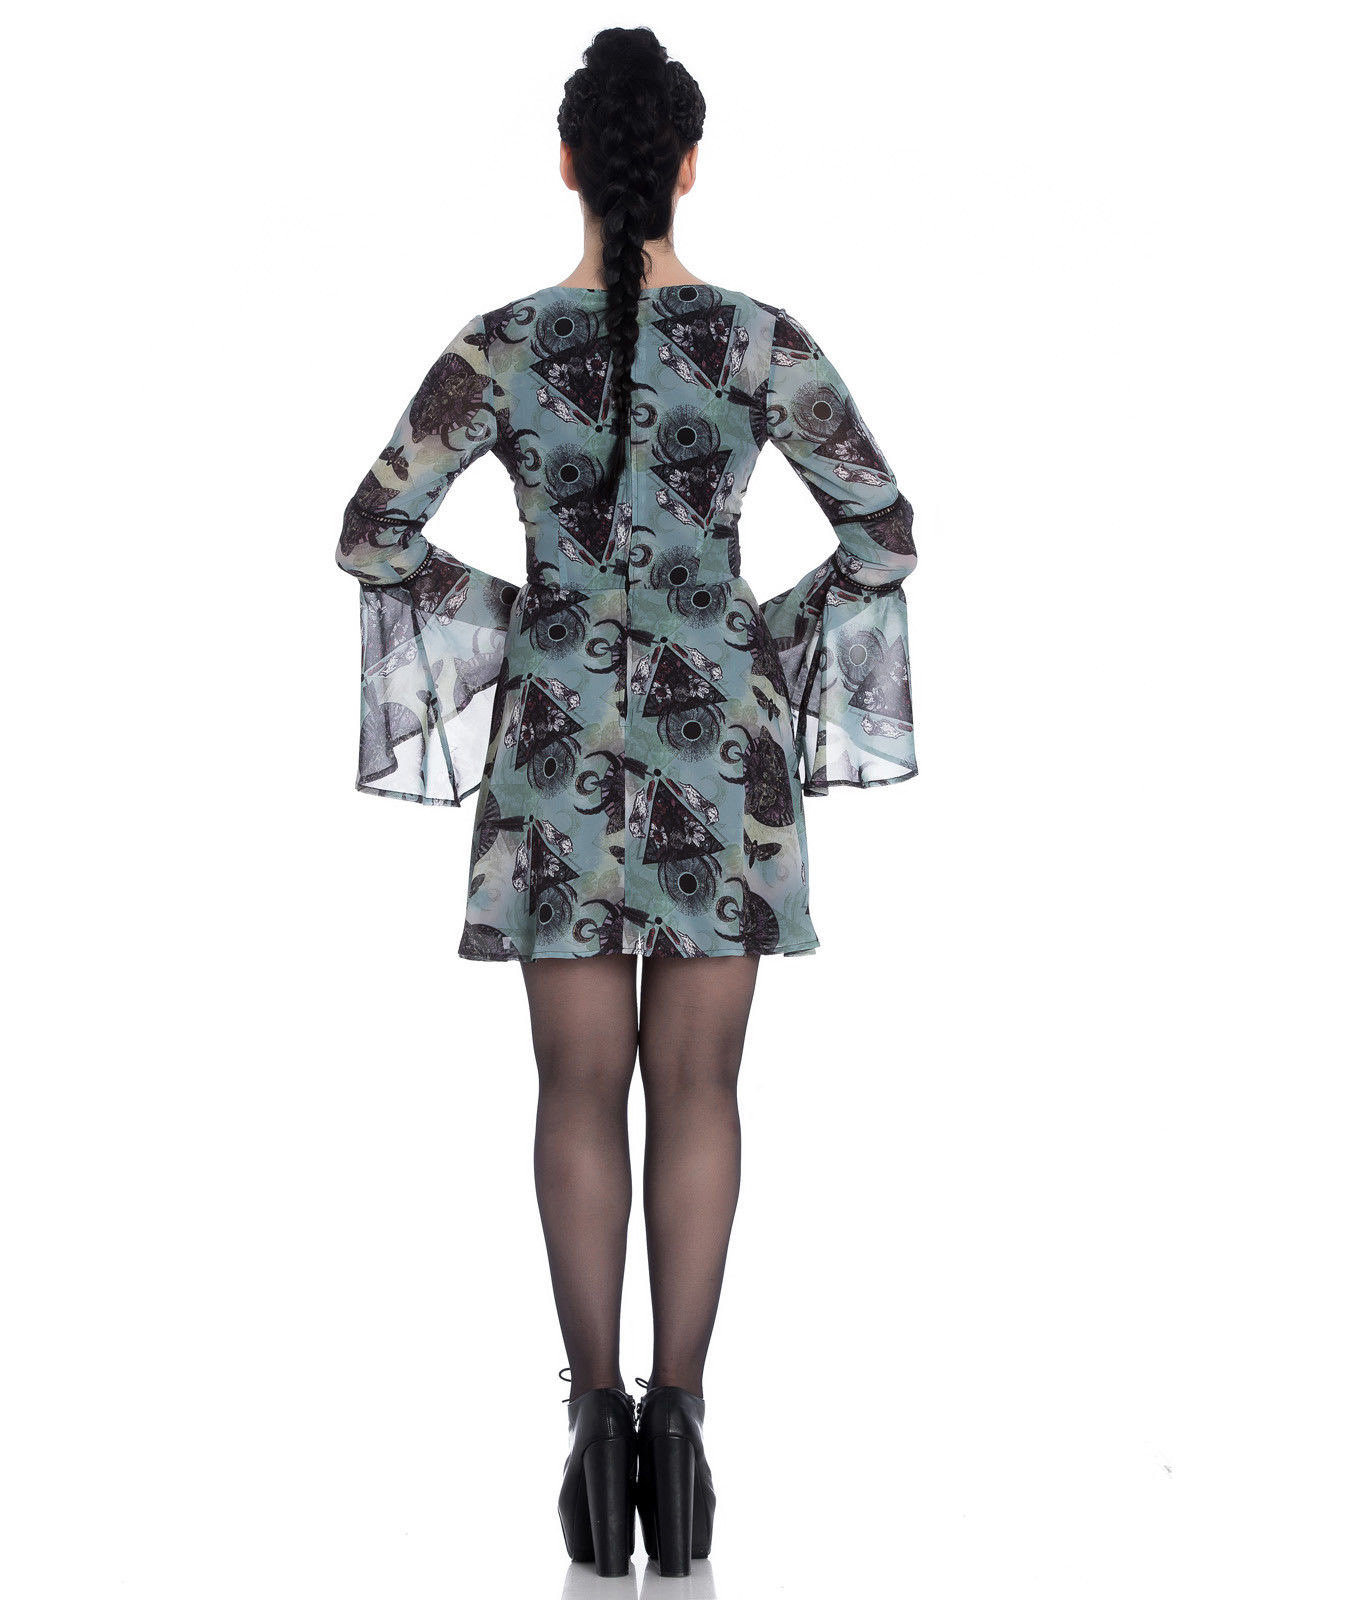 Hell-Bunny-Alchemy-Goth-Floaty-Witch-Mini-Dress-AFTER-DEATH-Teal-Green-All-Sizes thumbnail 13